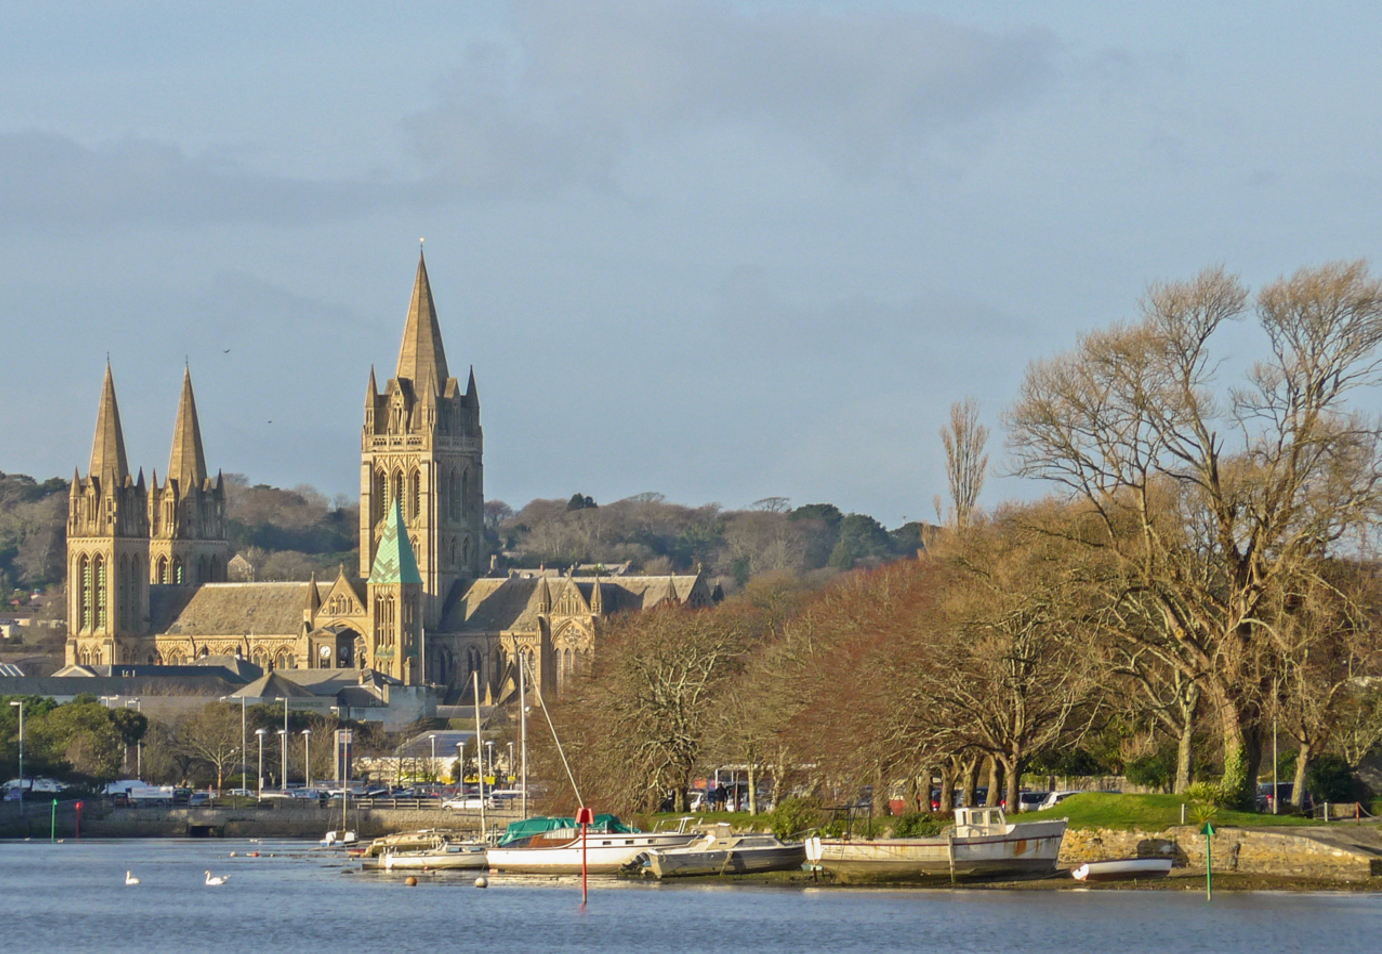 truro_cathedral_and_the_river_truro-featured-image